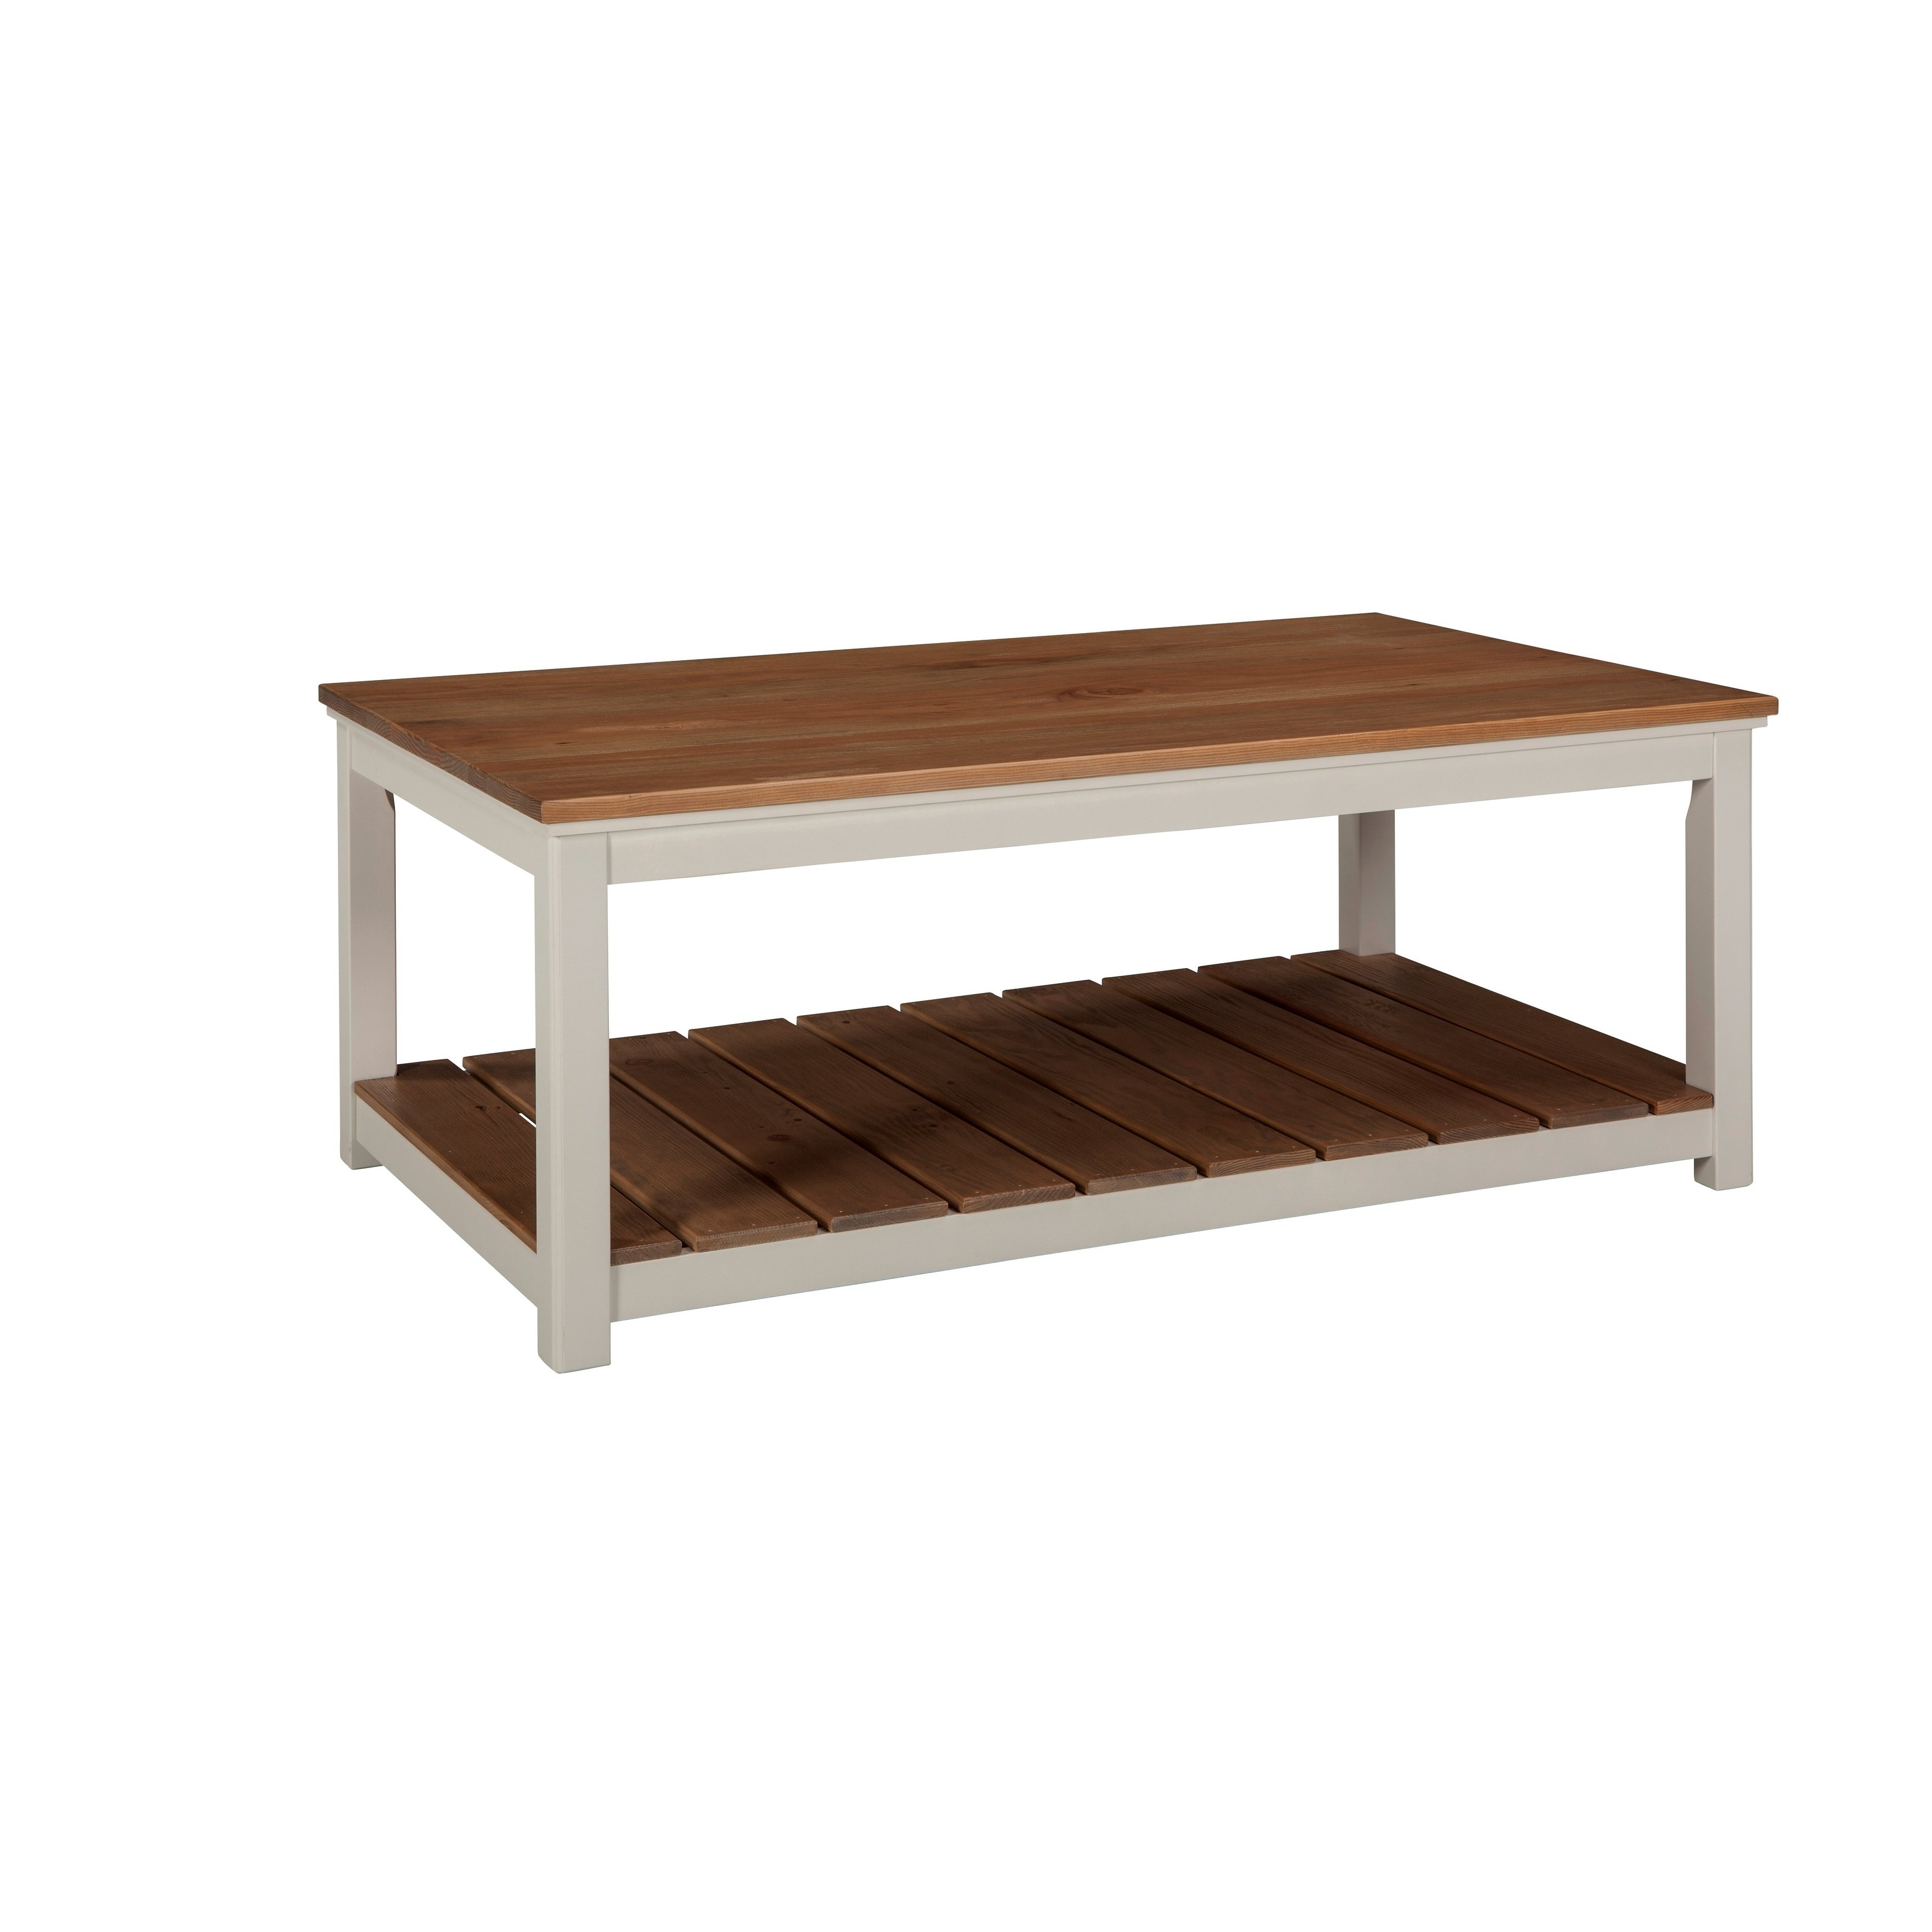 """Element Ivory Rectangular Coffee Tables Pertaining To 2018 Shop Savannah 45""""w Coffee Table, Ivory With Natural Wood Top – On (View 4 of 20)"""